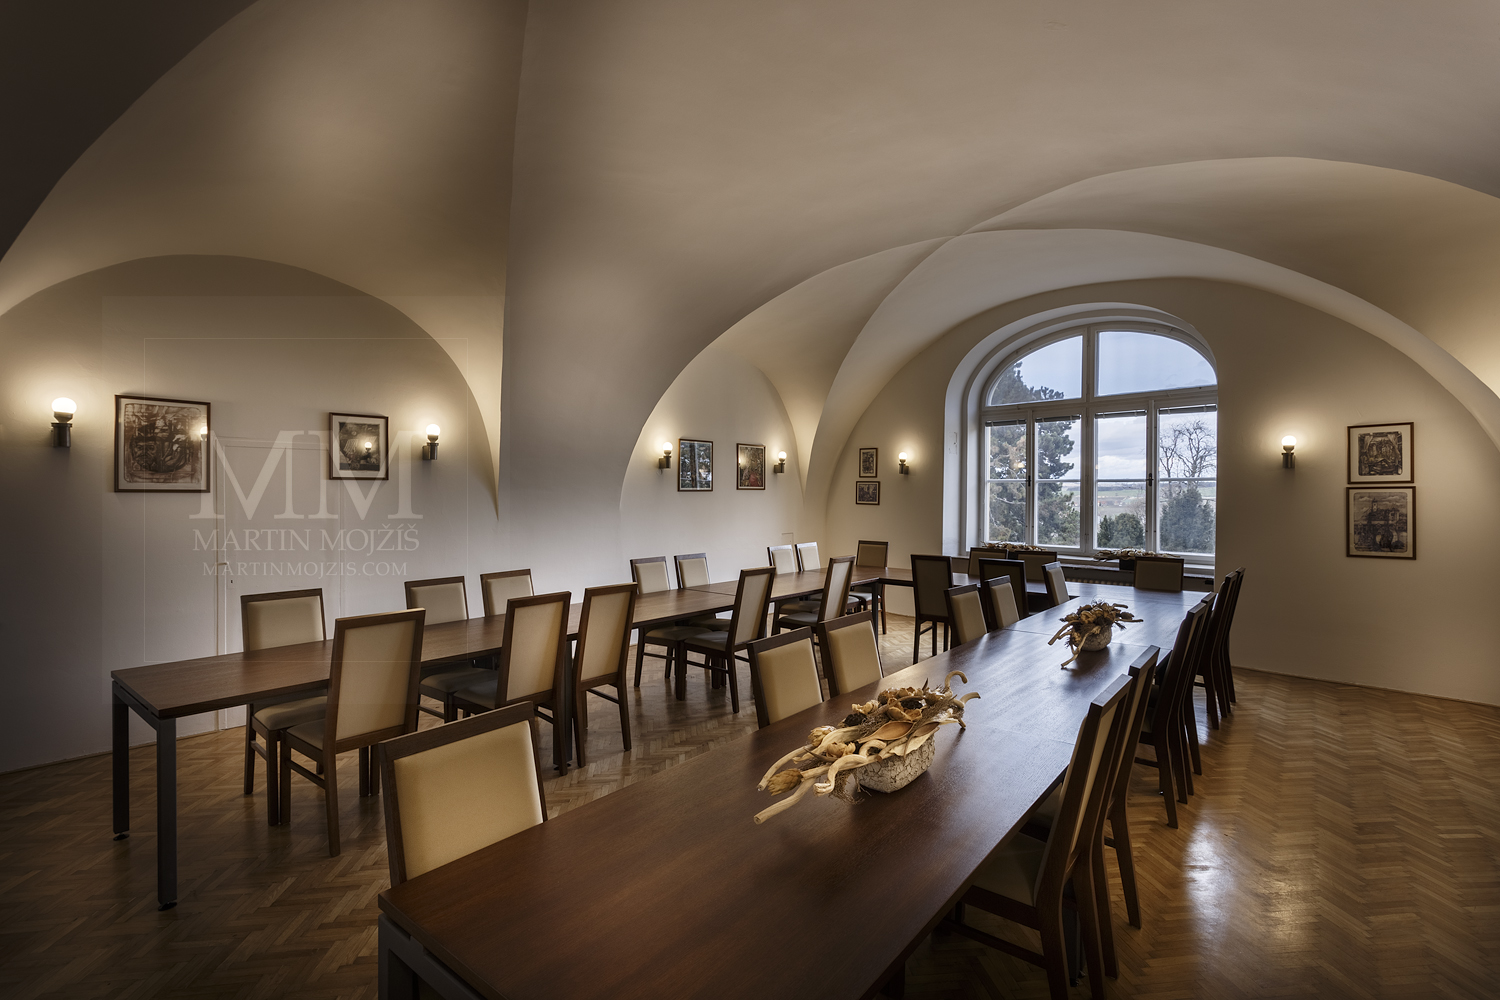 Melnik City Hall – meeting room. Professional photography of architecture - interiors.